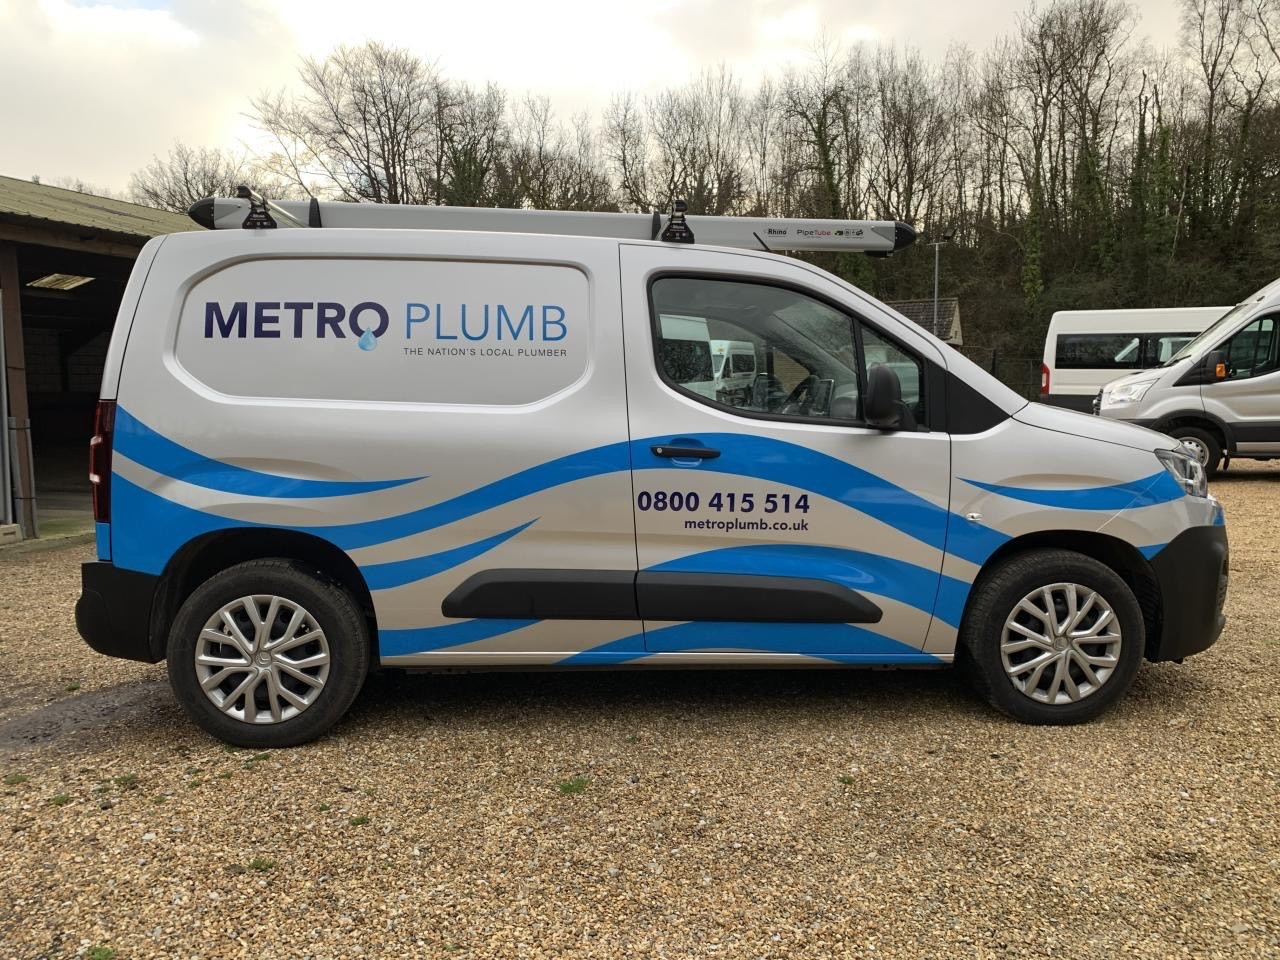 MetroPlumb Plumbing Business